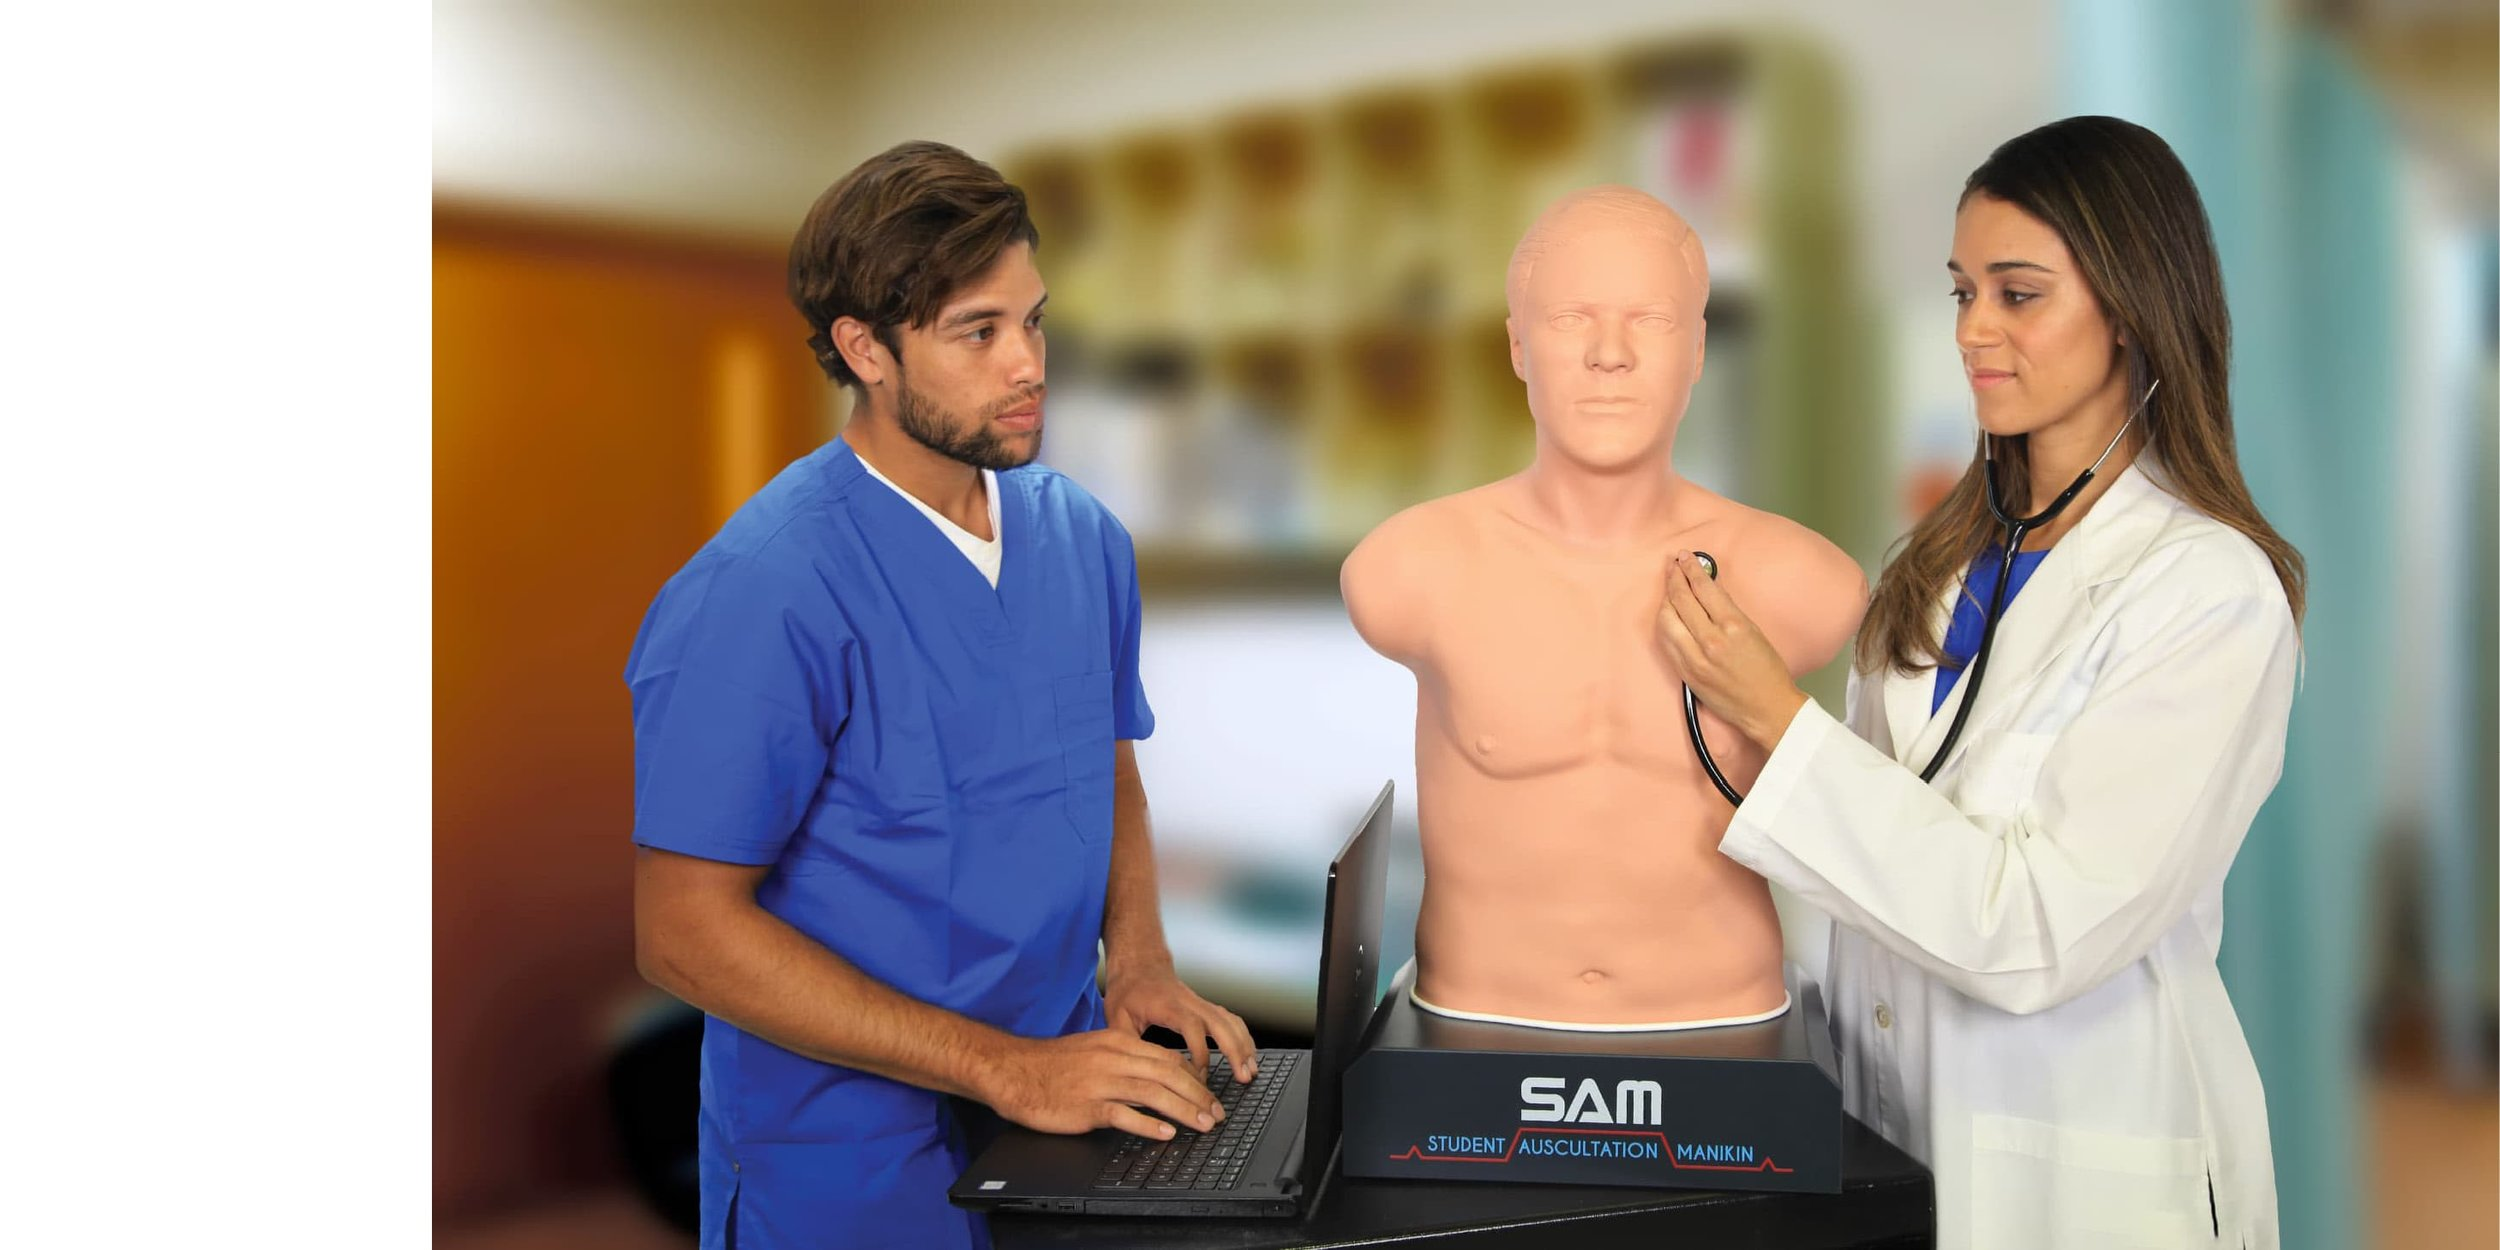 """""""With 1,200 students a year using them, the SAMs are my most useful tool. They're very dependable and functional."""" - — DR. BILL BOUDREAUX, ASSISTANT PROFESSOR + MEDICAL EDUCATOR AT UTMB SCHOOL OF MEDICINEVIEW SAM 3G →"""